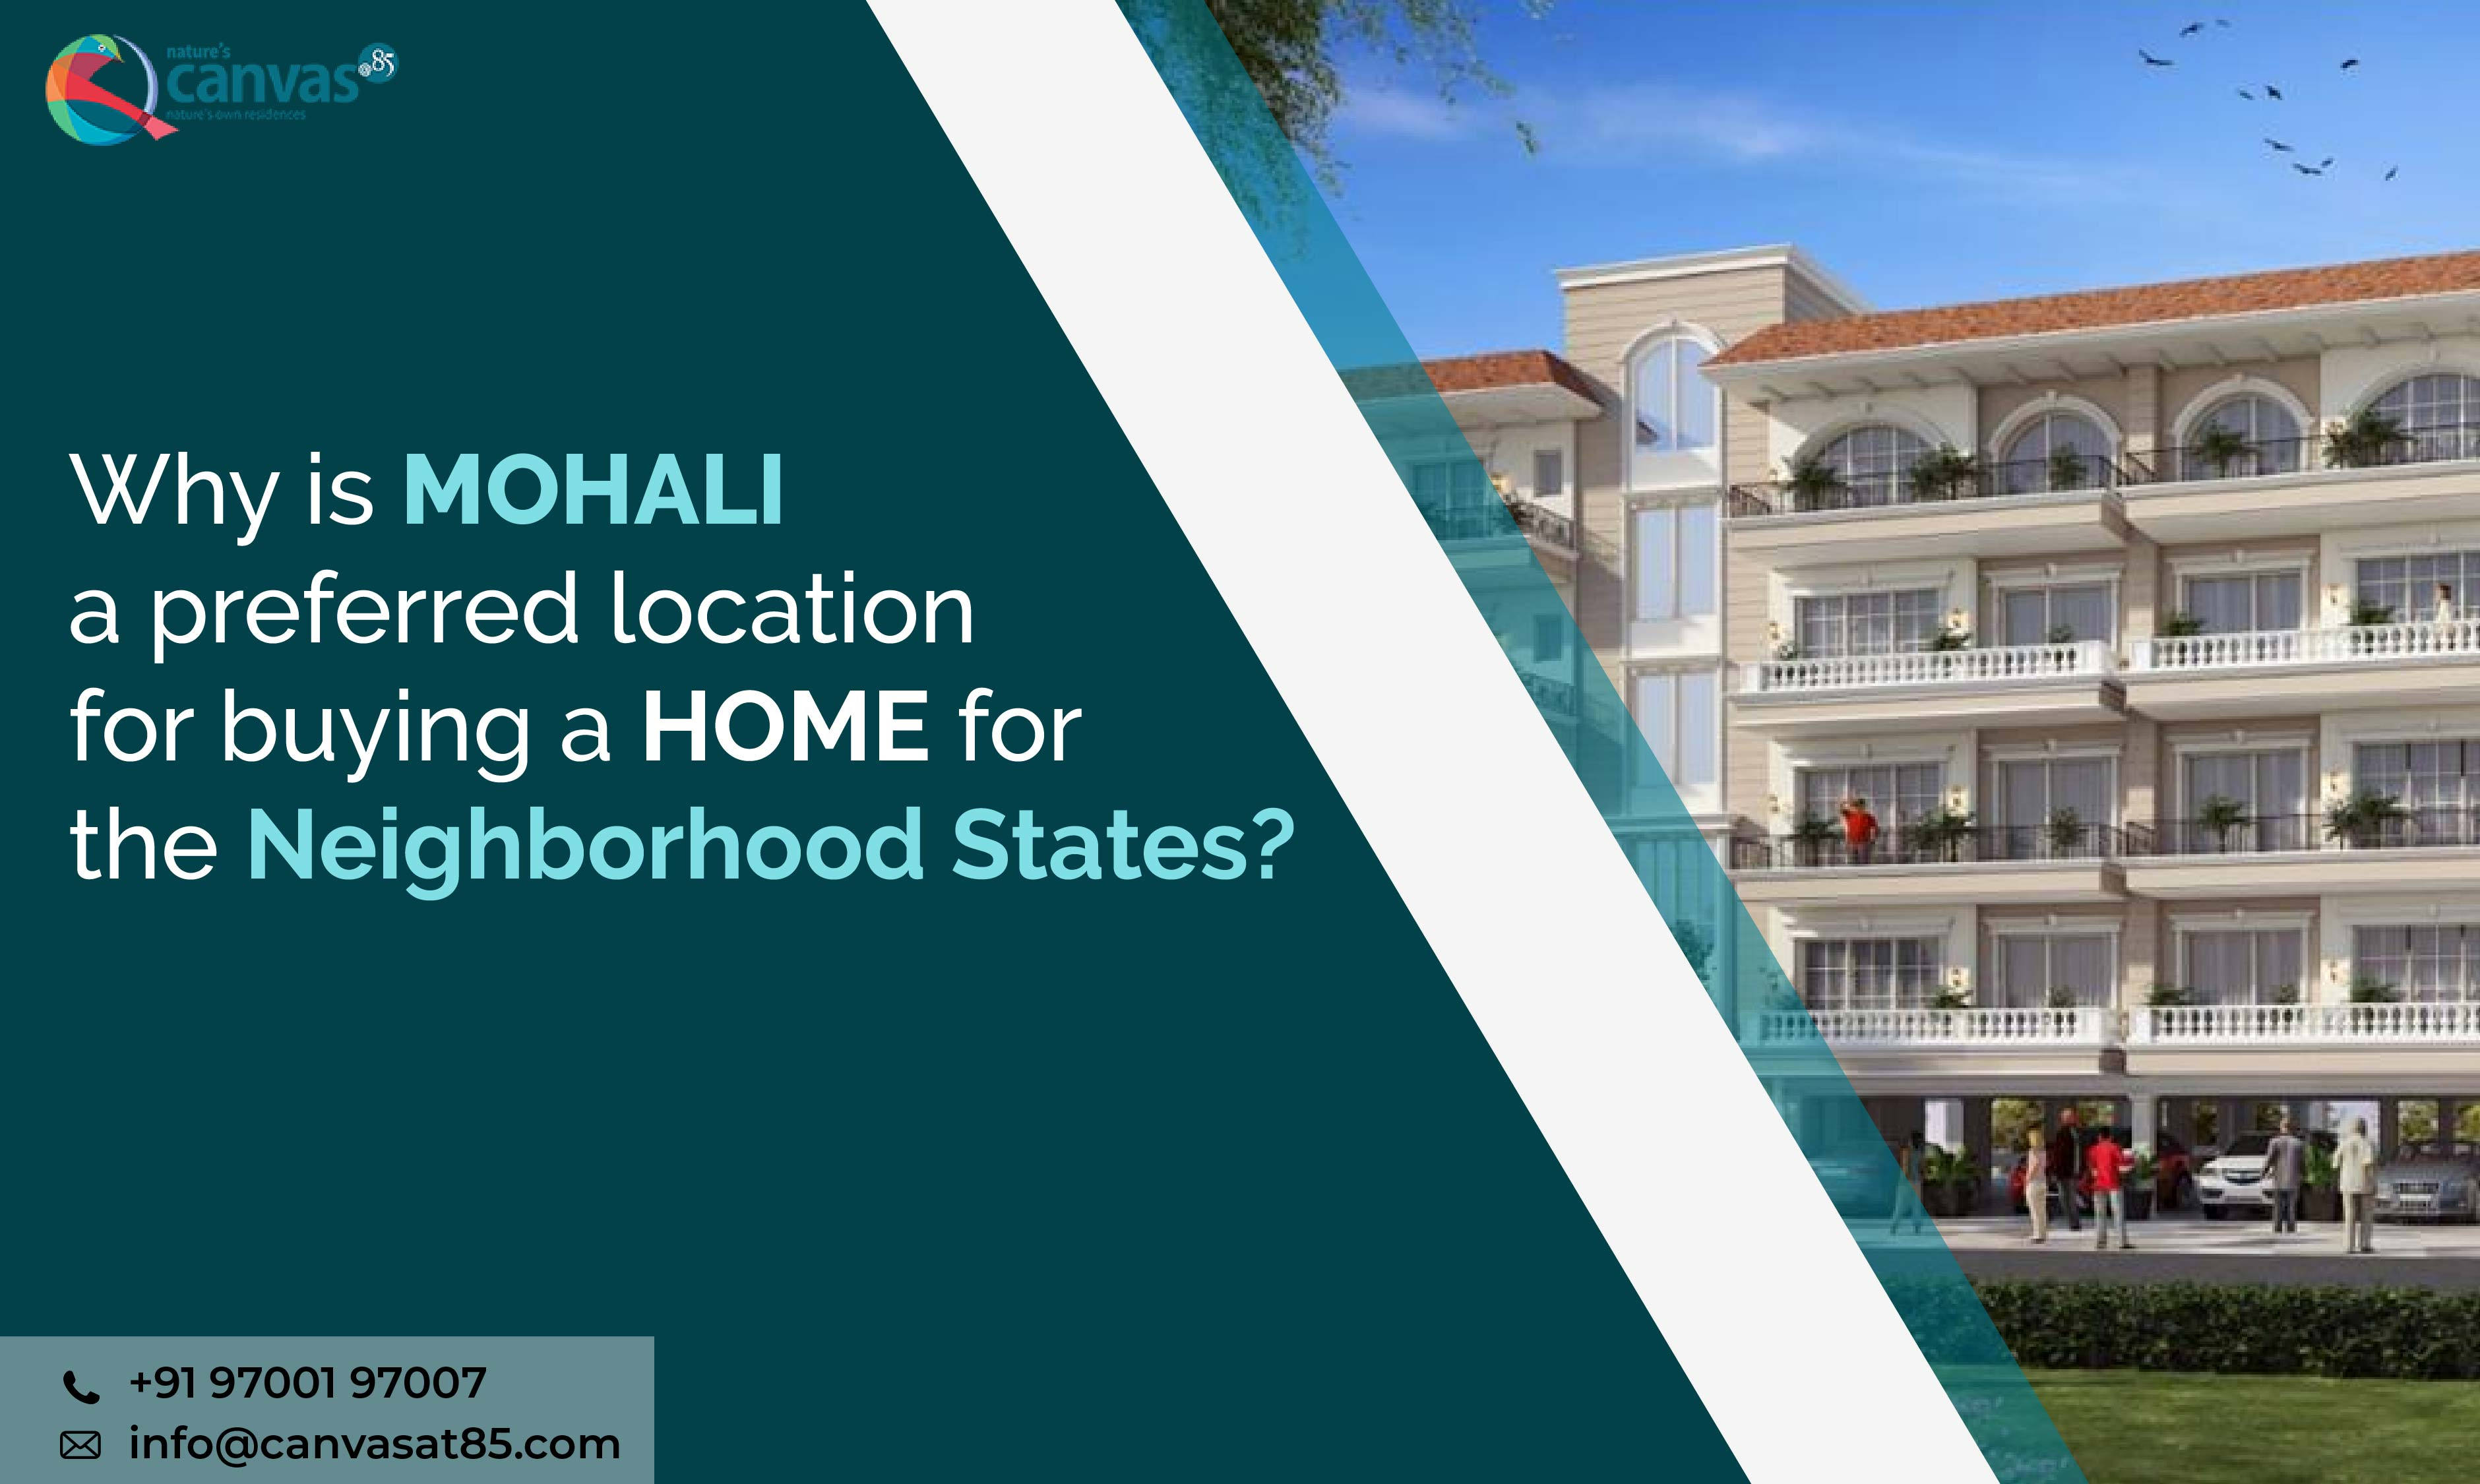 Why is MOHALI a preferred location for buying a home?